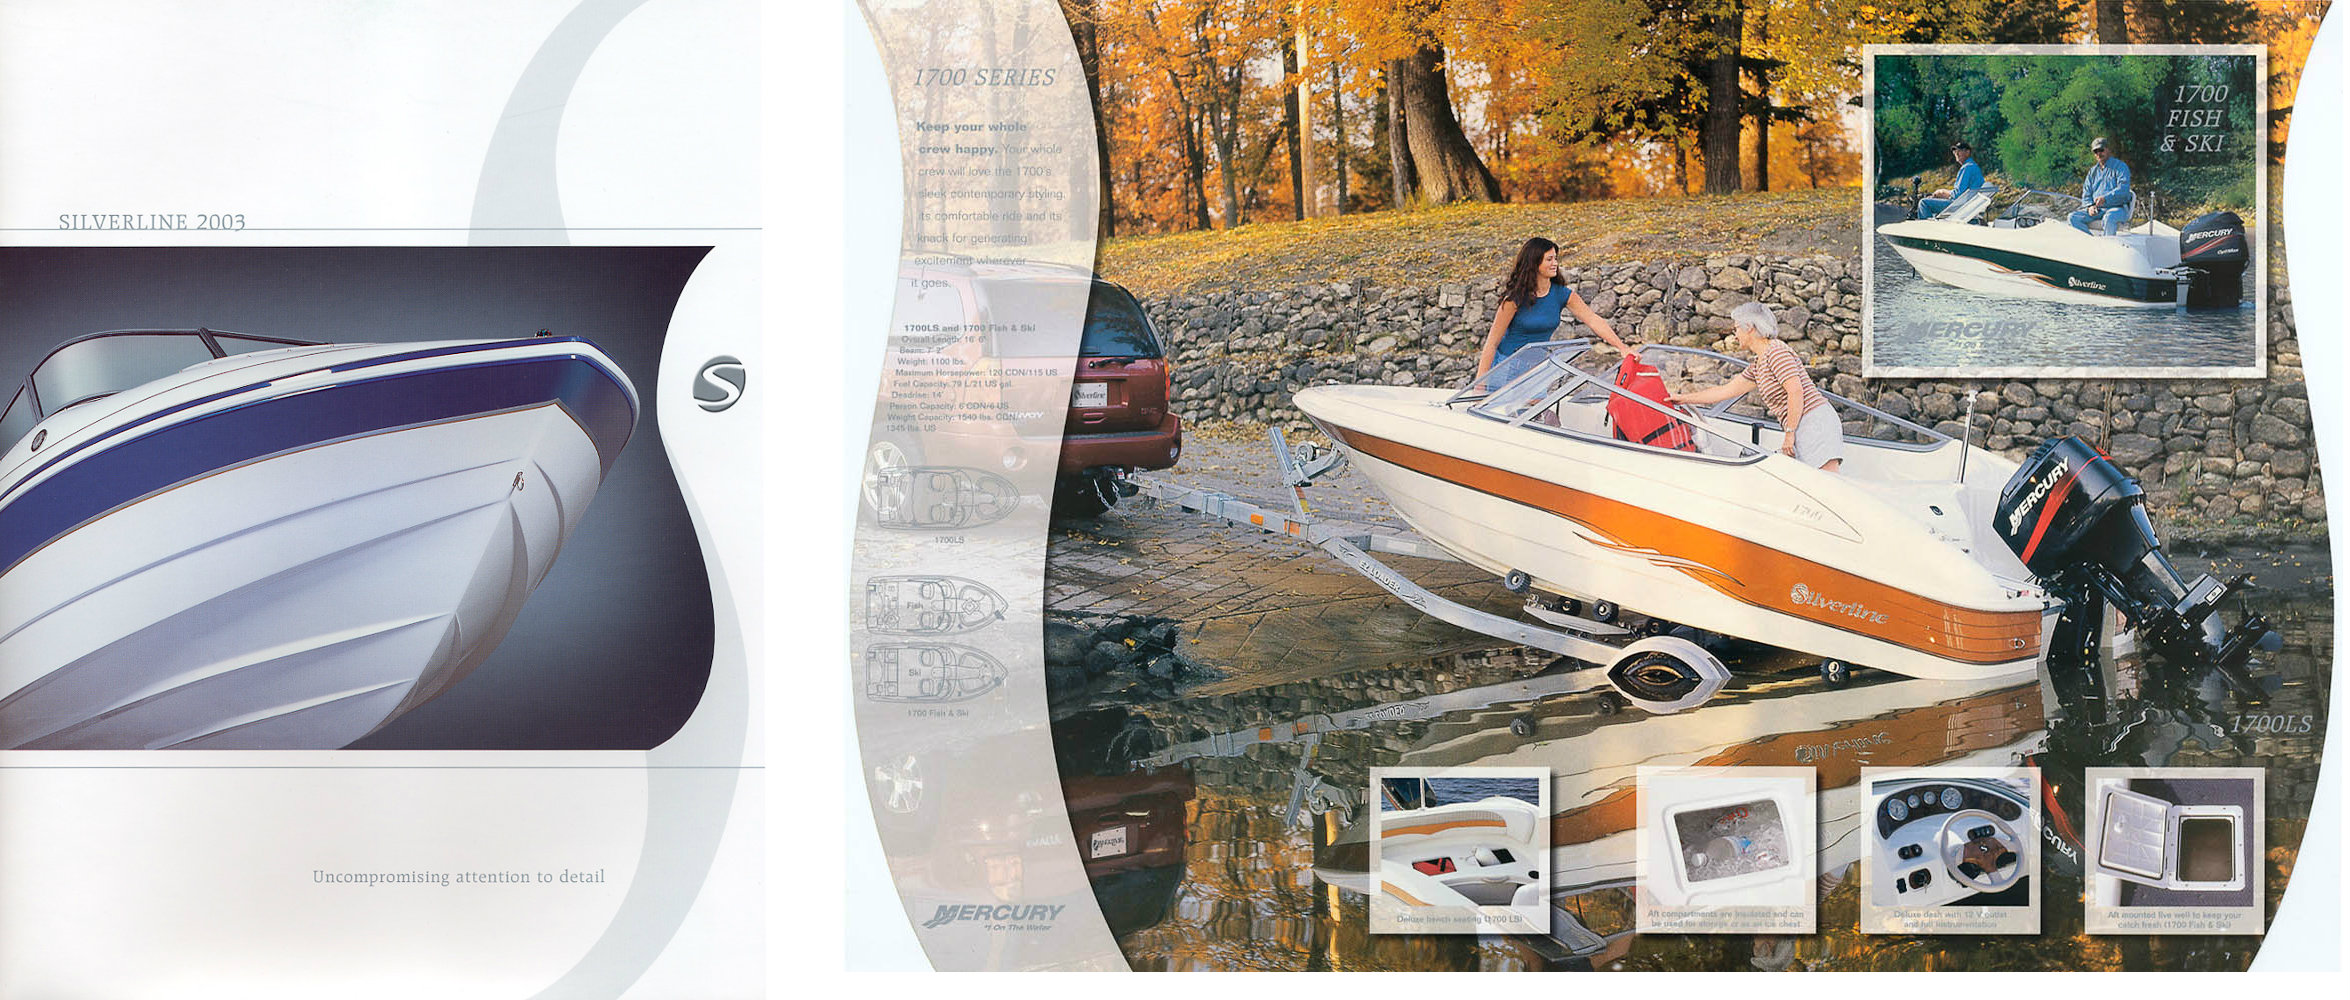 Boat ad by Winnipeg commercial photographer